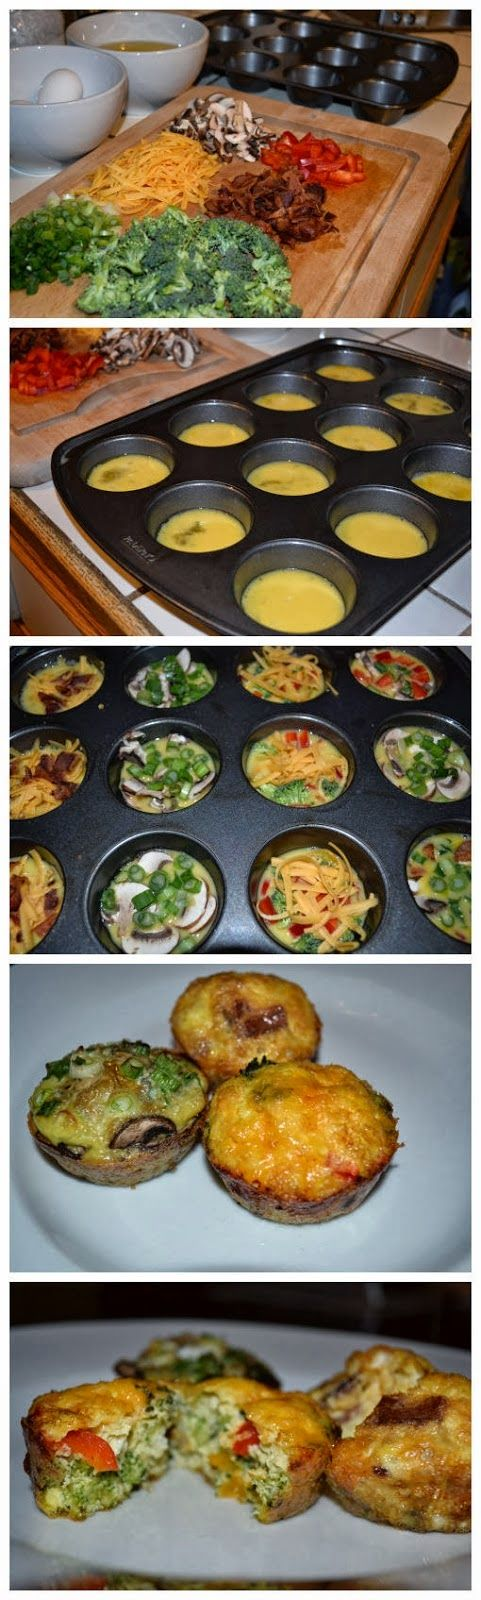 Egg Muffins - BestFoodRecipes